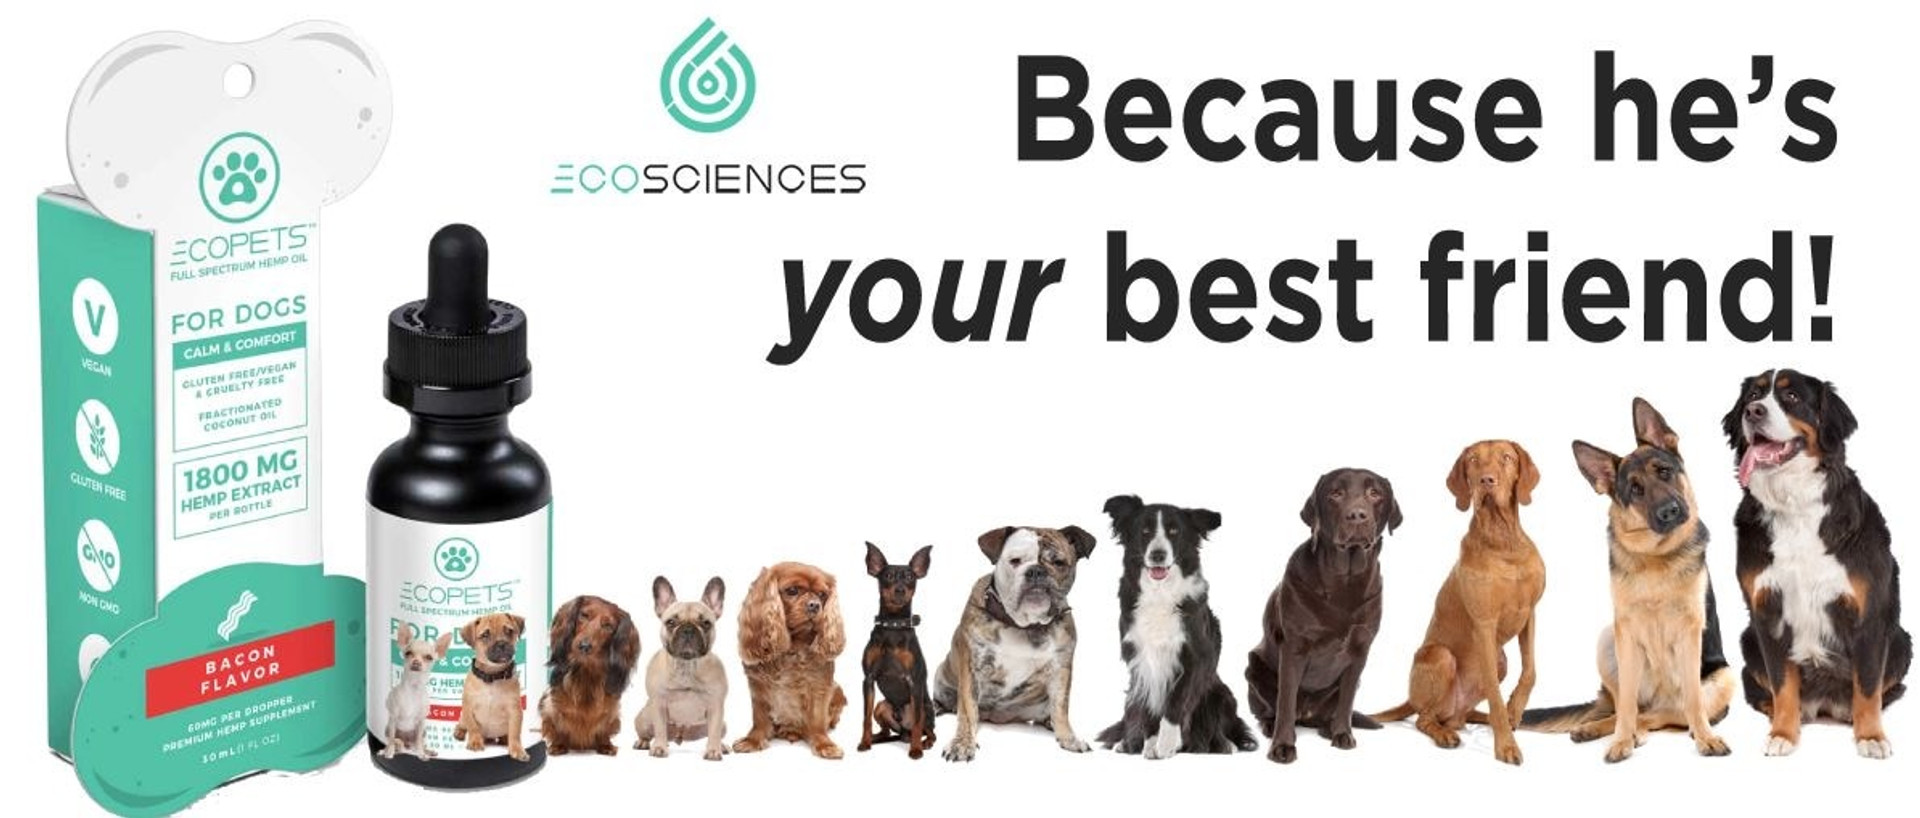 Ecosciences or previously known as CBD Drip Brings the number one pet product on the market with CBD ECOPETS Bacon For Dogs